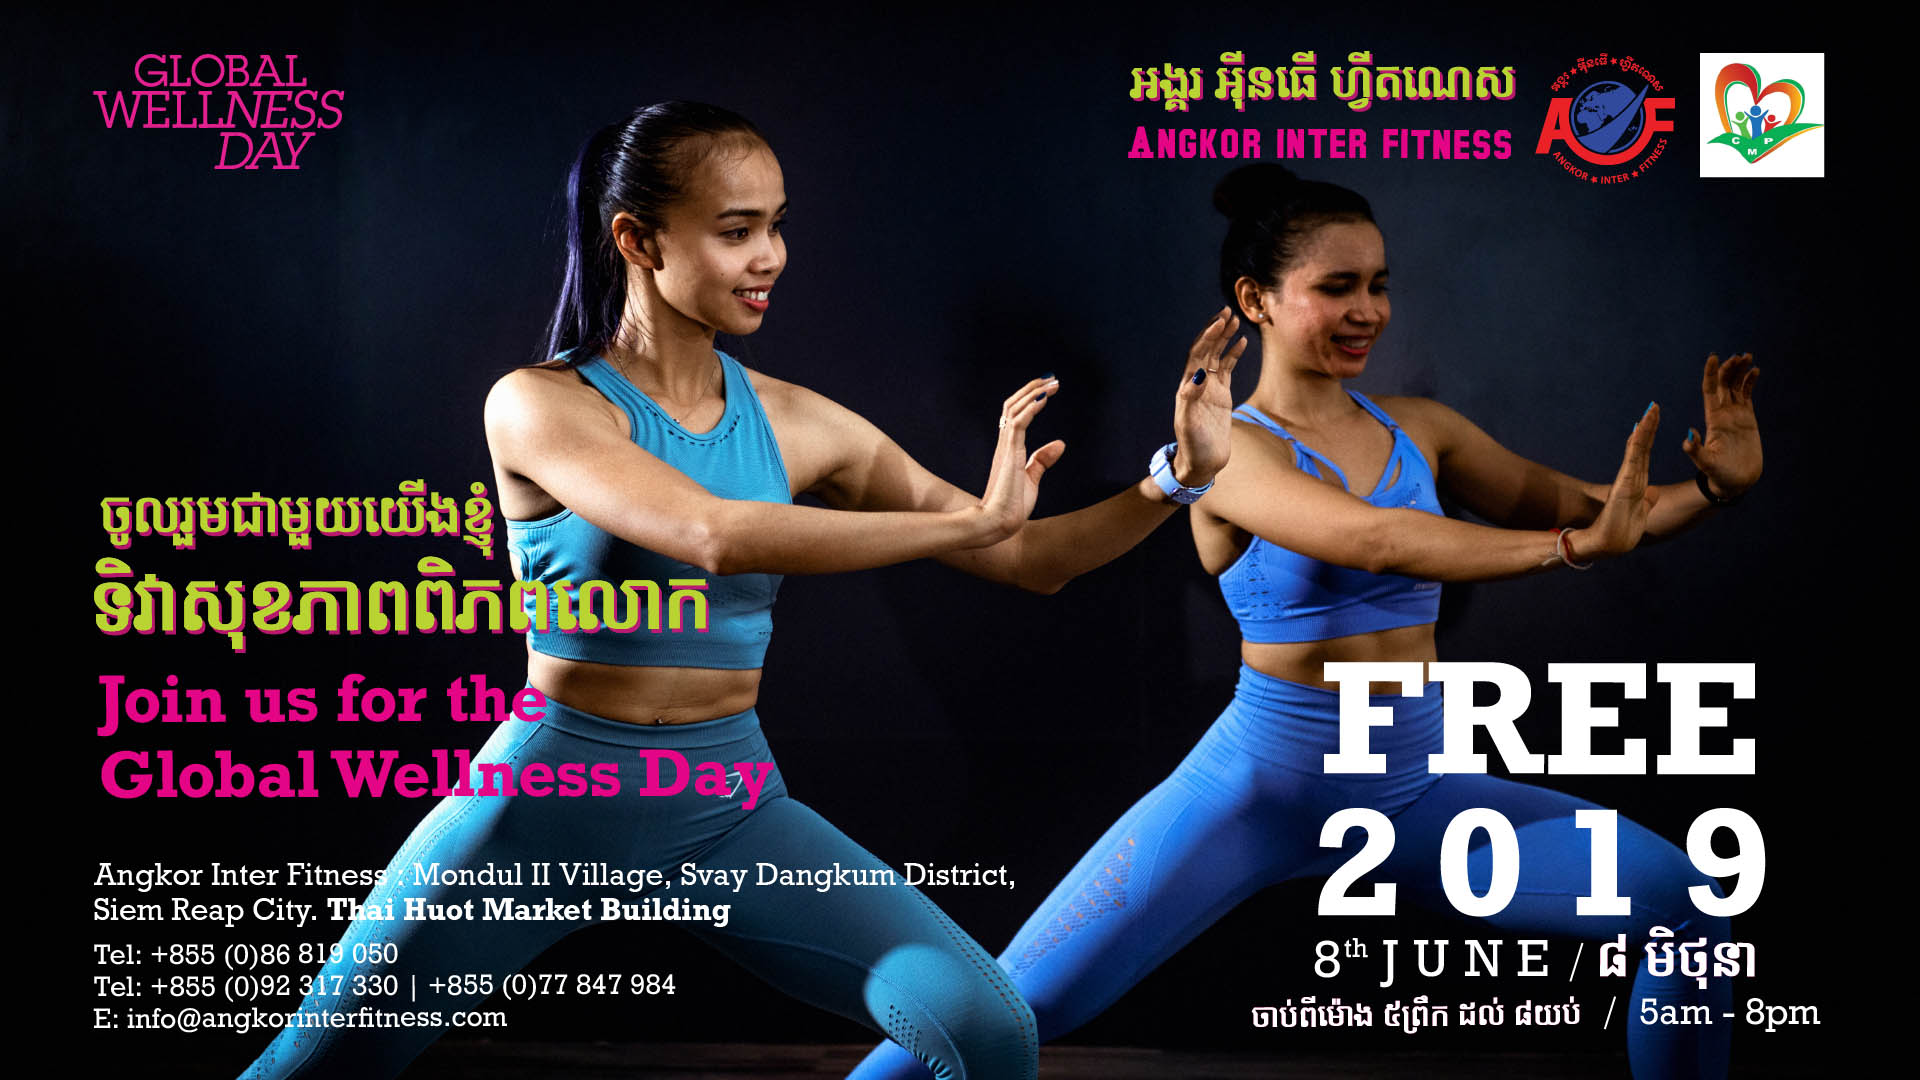 Global Wellness Day 2019 in Siem Reap